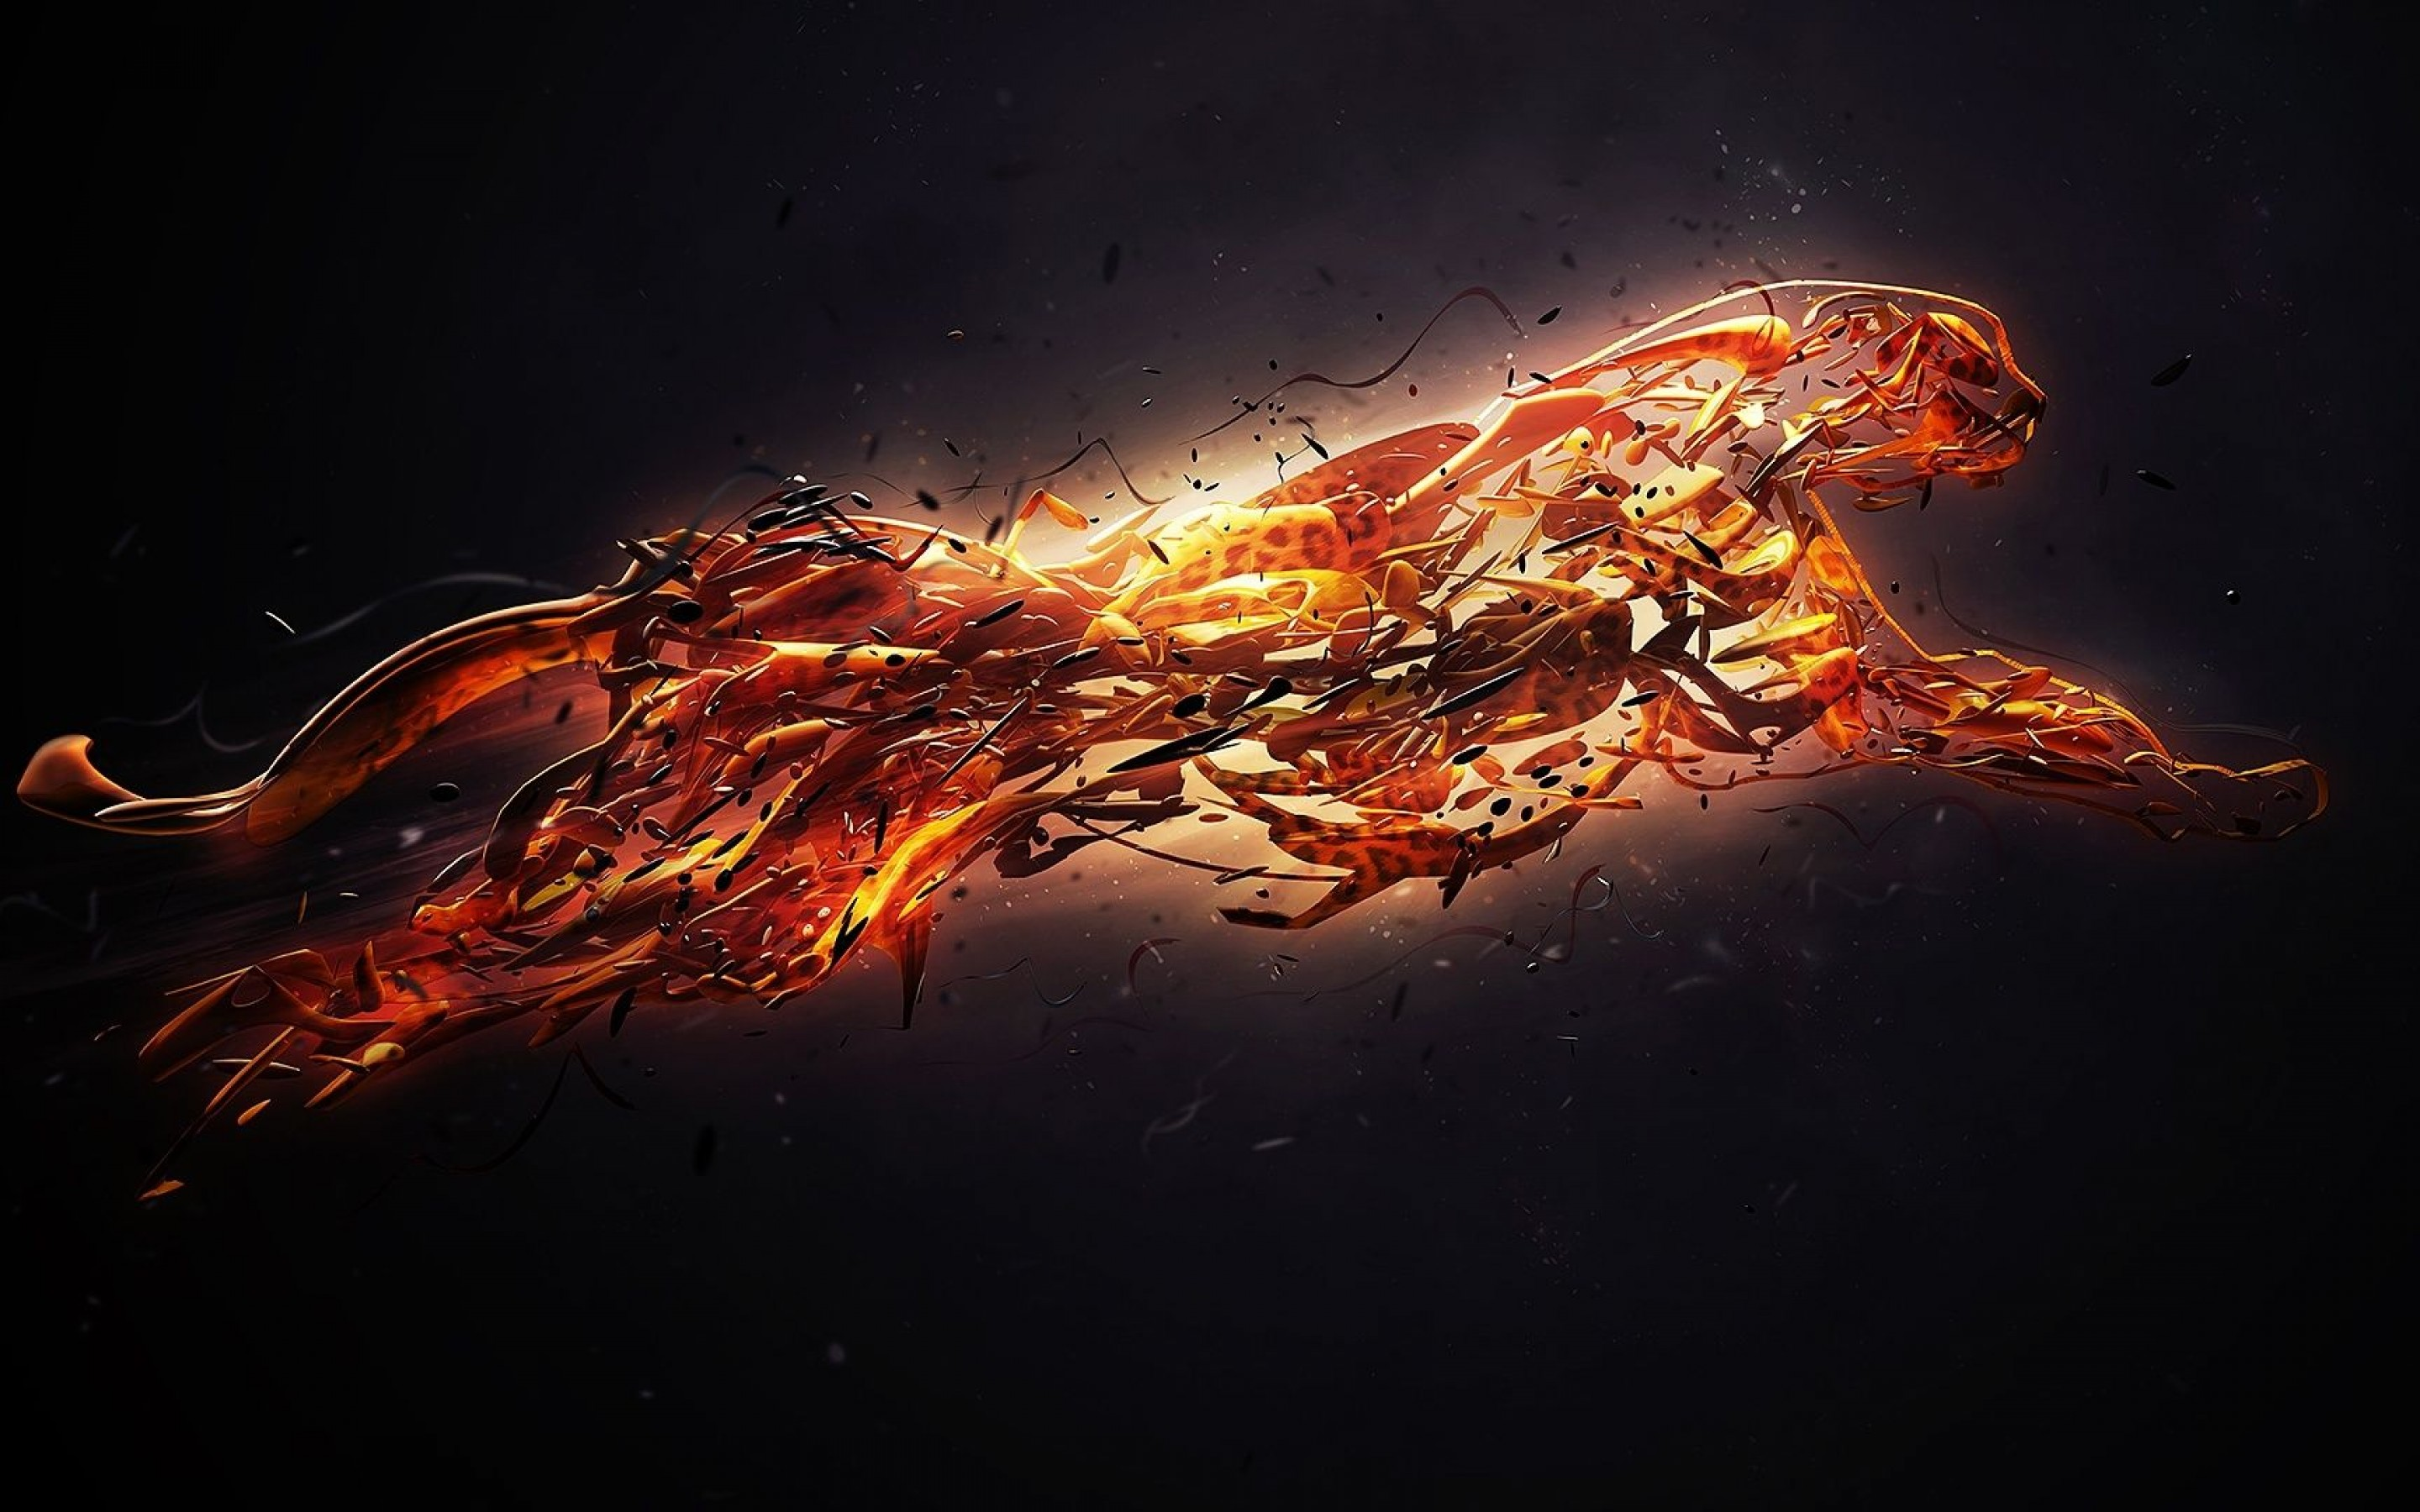 20 fire art wallpapers for 3d wallpaper ideas